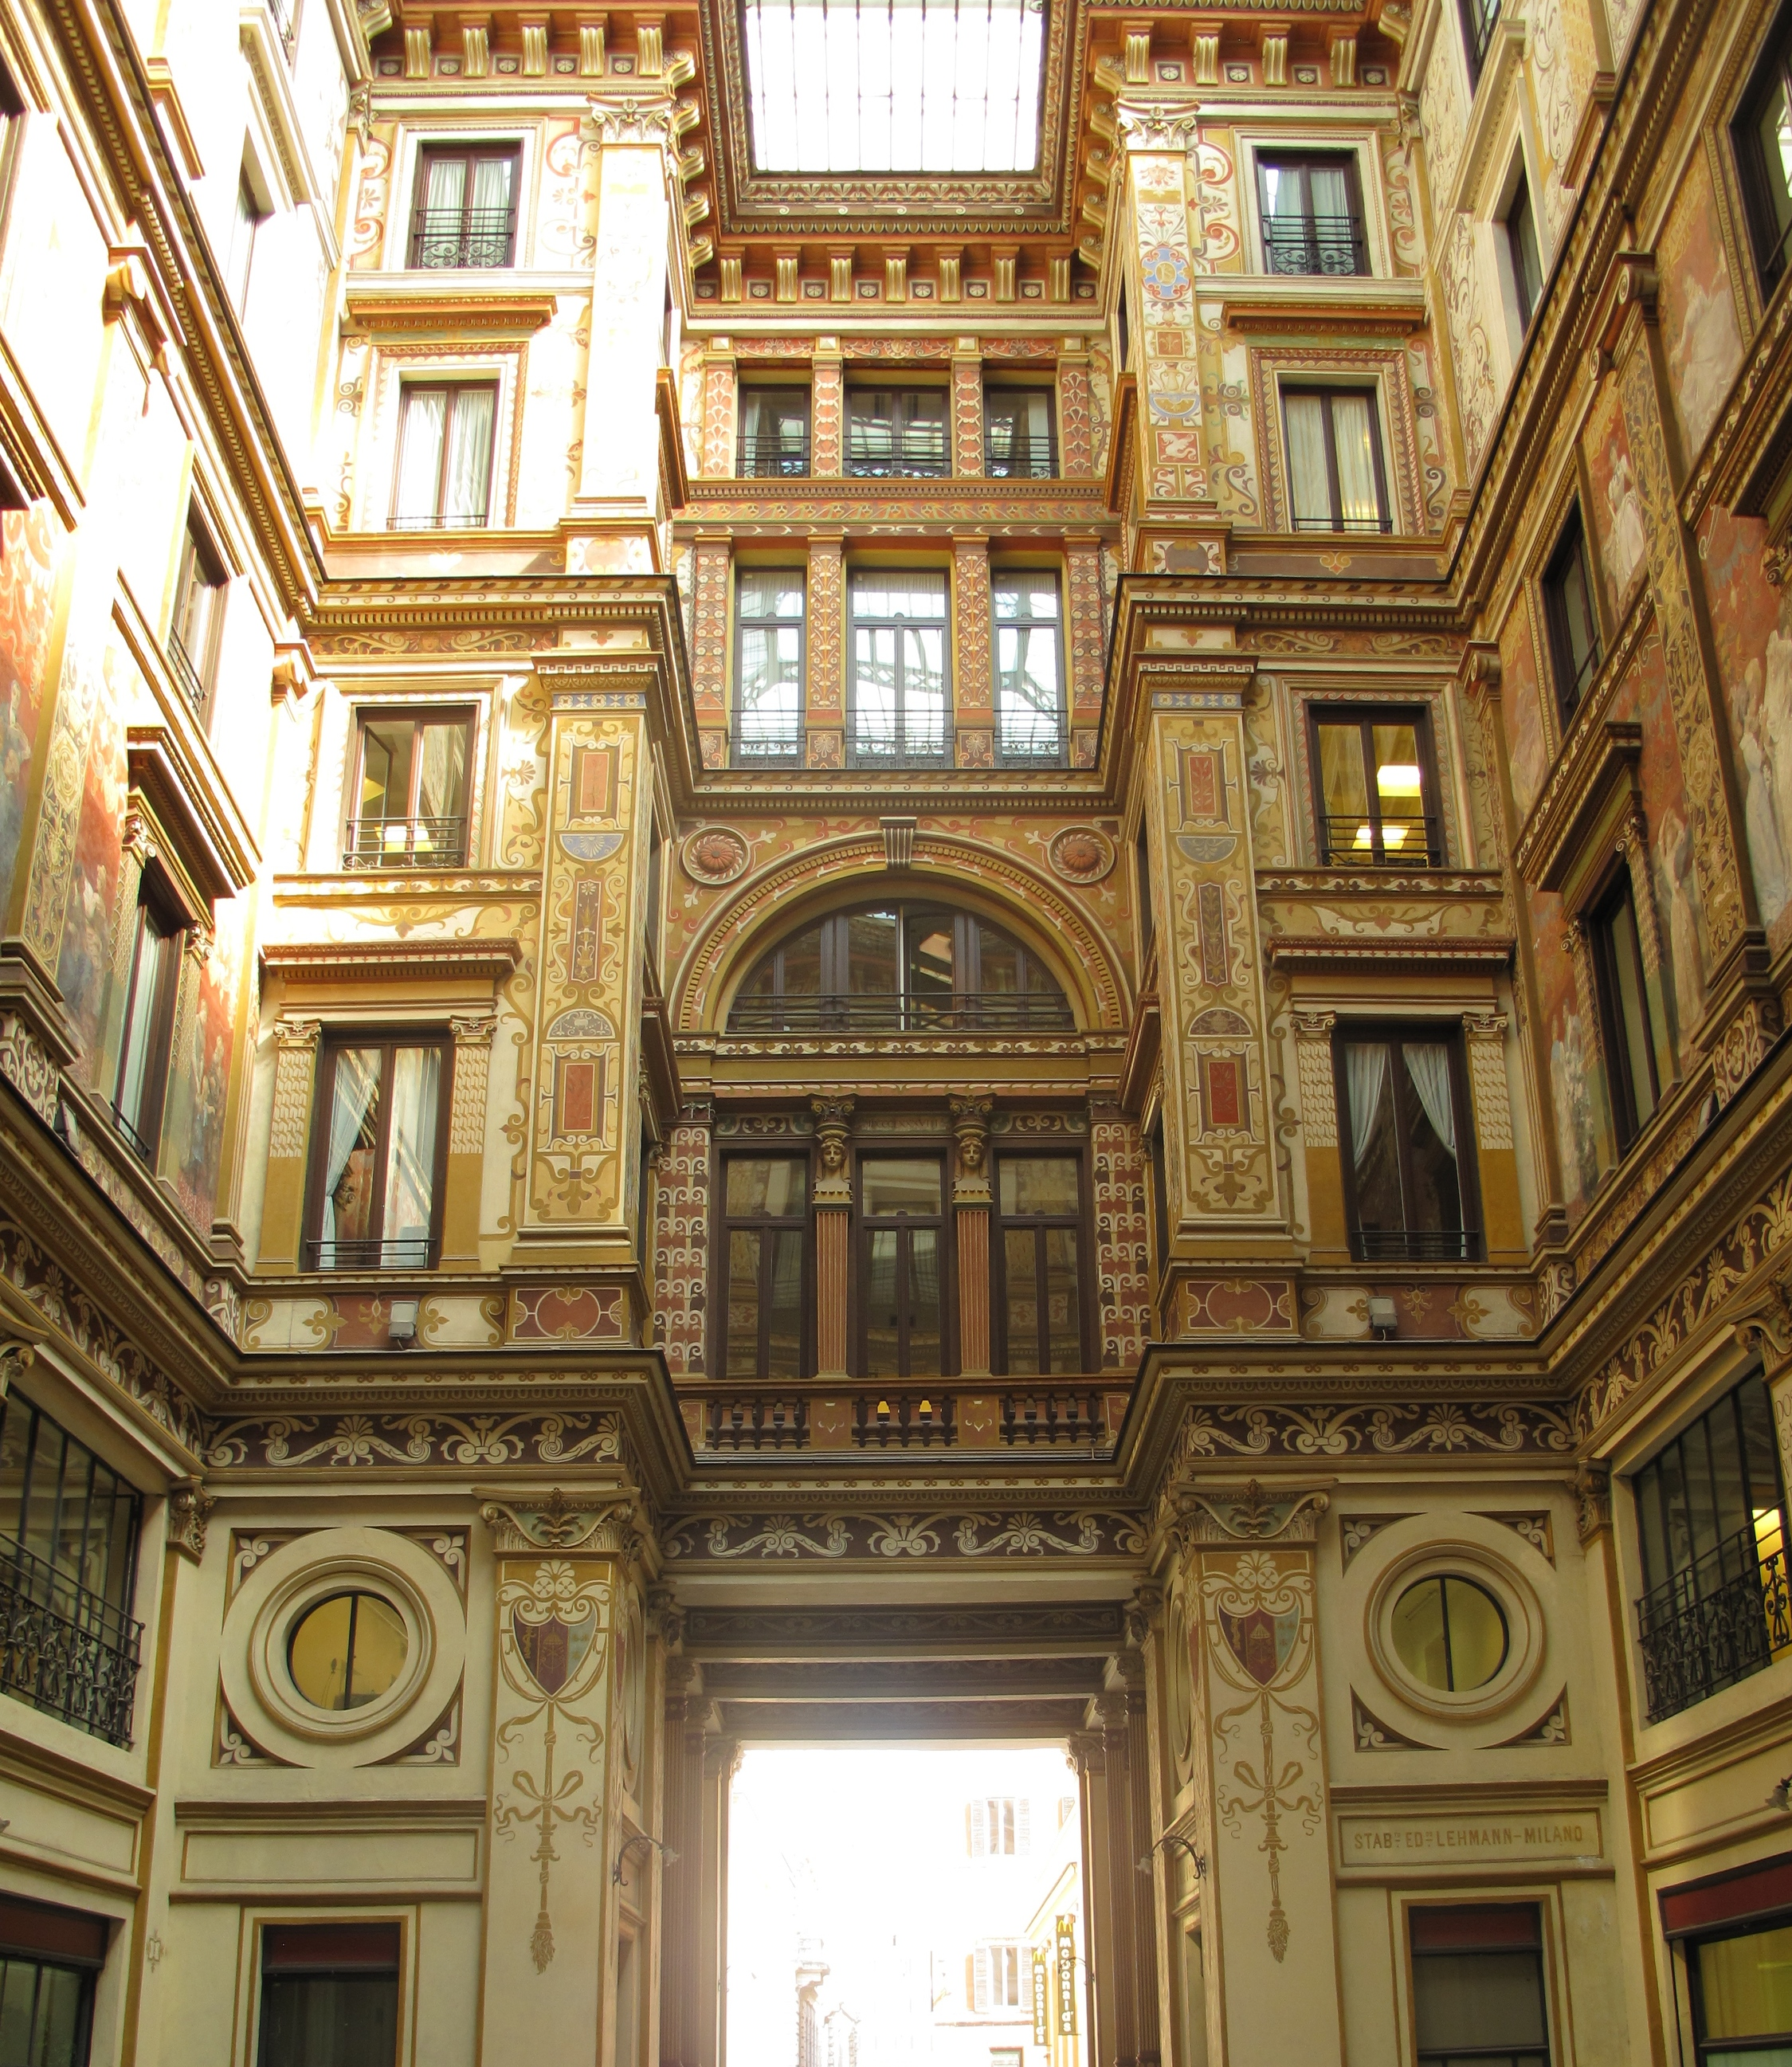 A beautifully painted interior courtyard in Rome